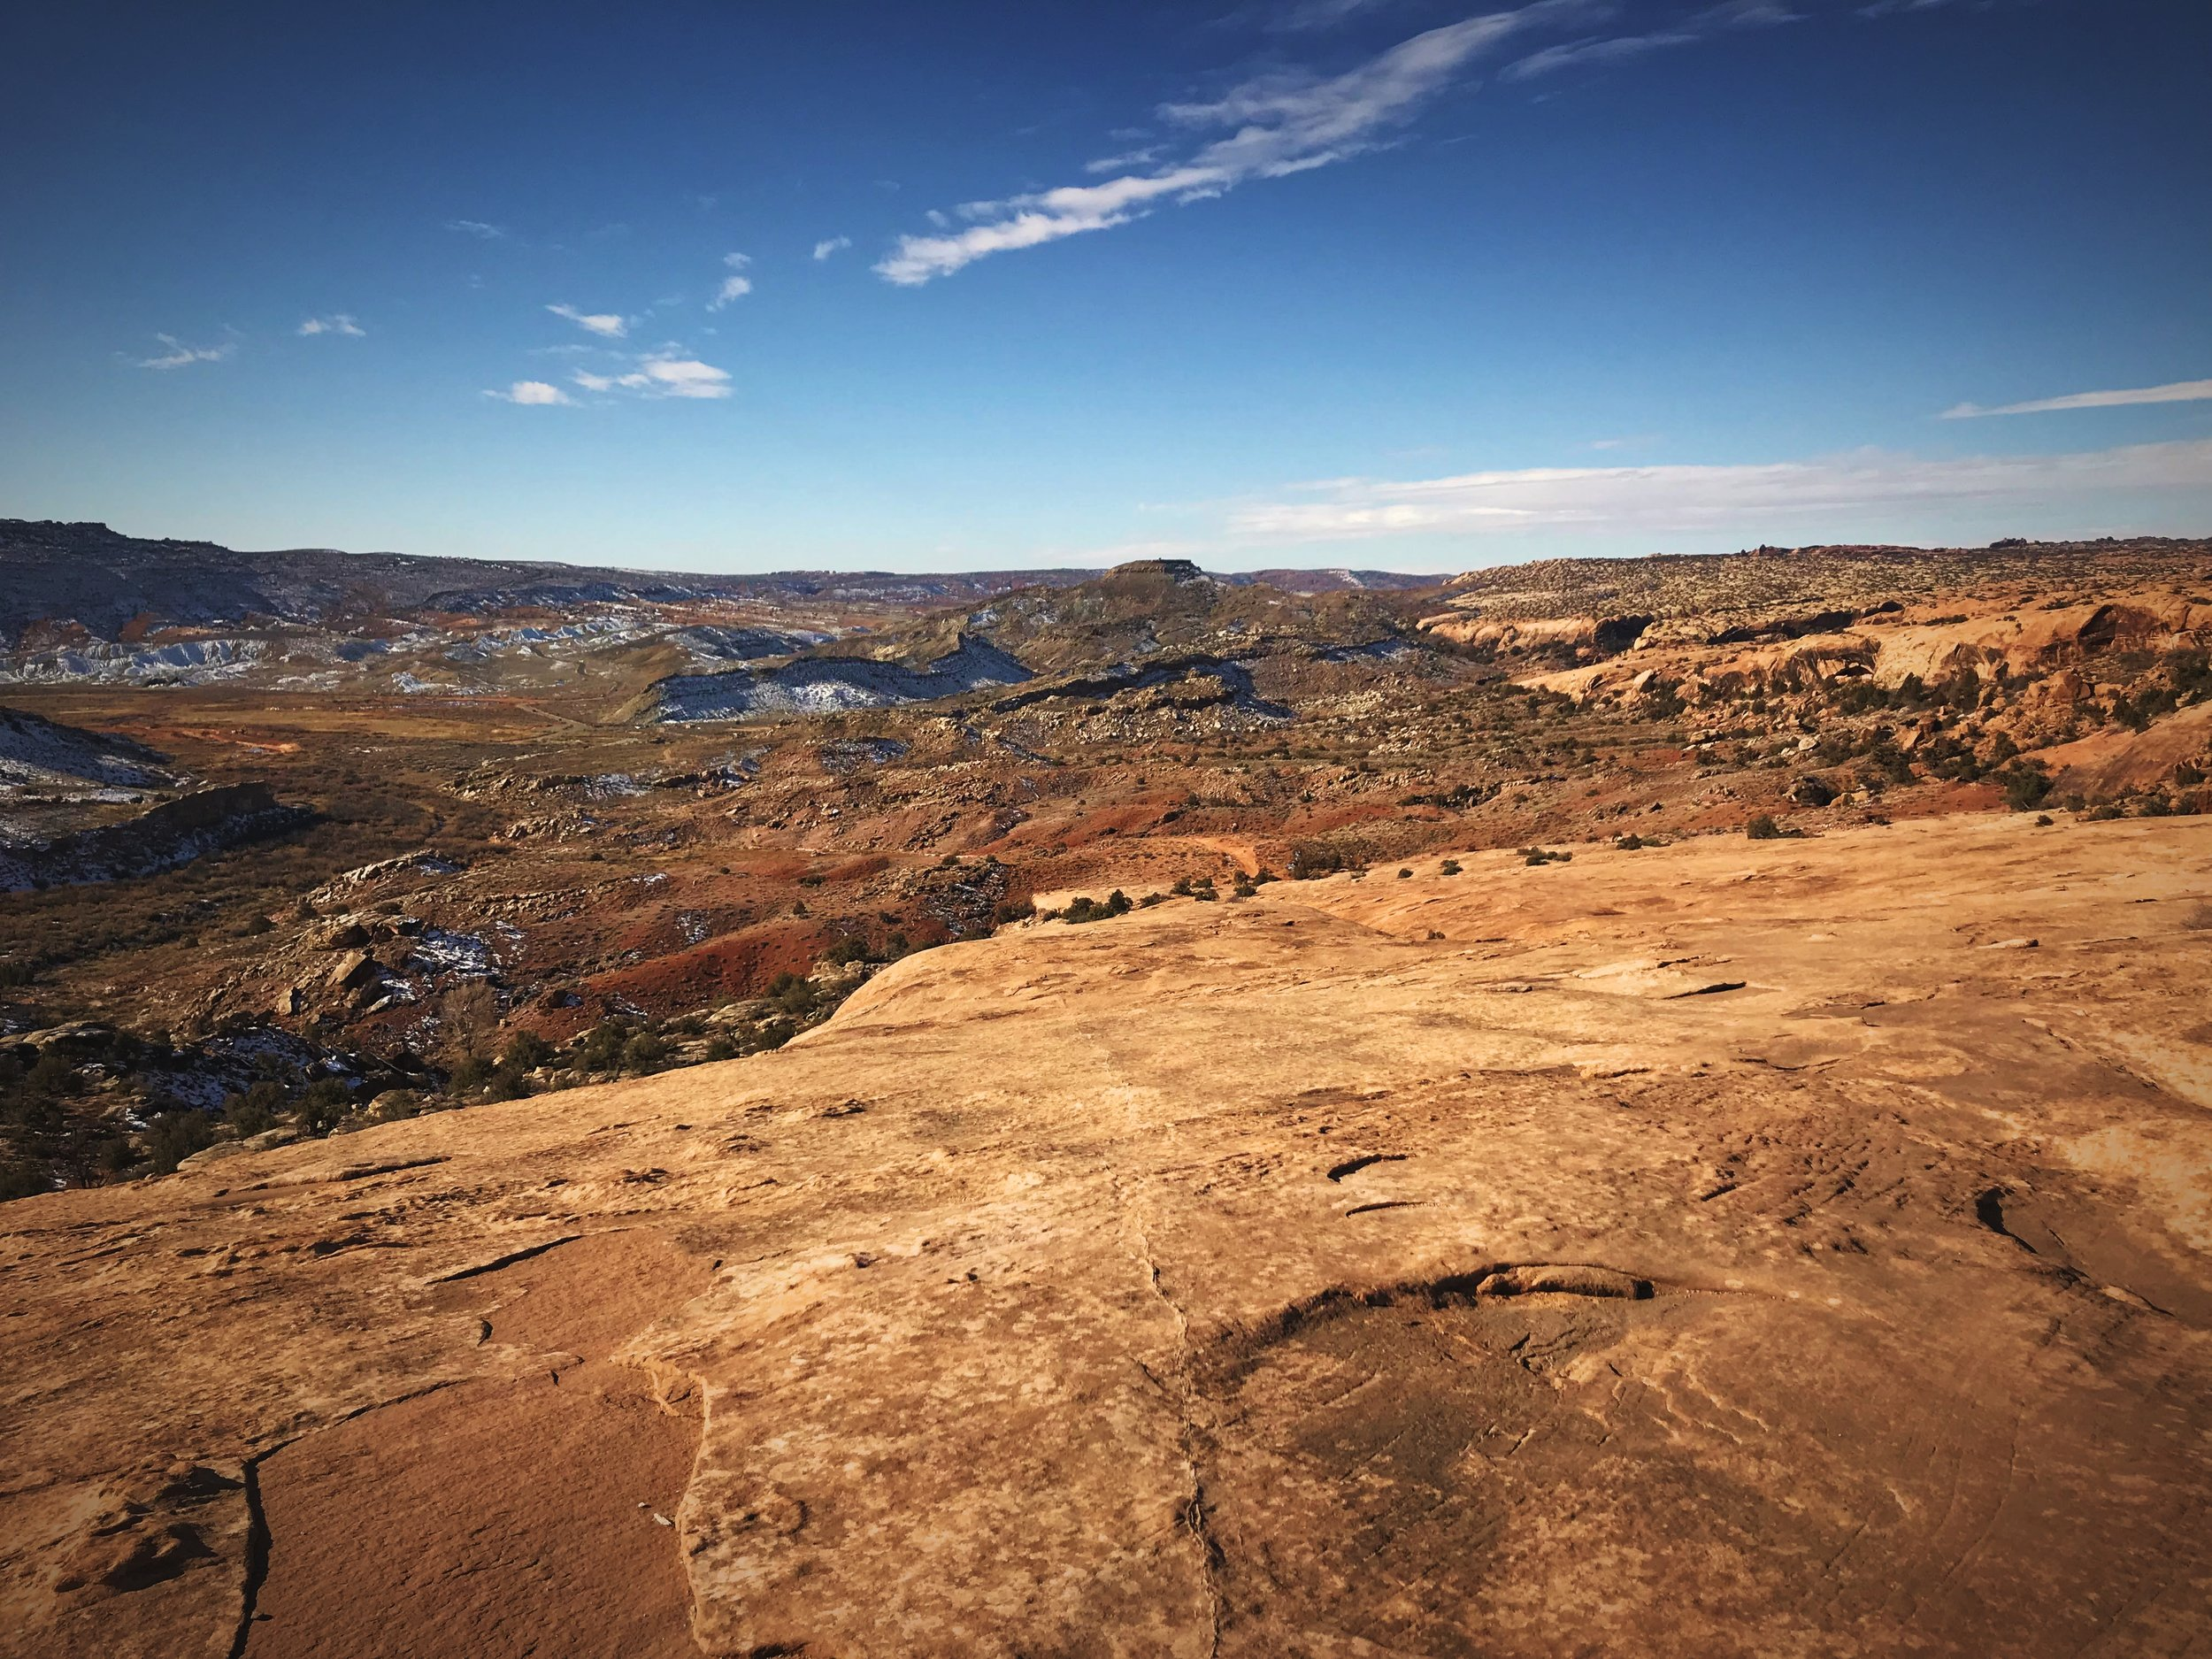 Don't forget to look around you while hiking to Delicate Arch. You will be treated to gorgeous views.